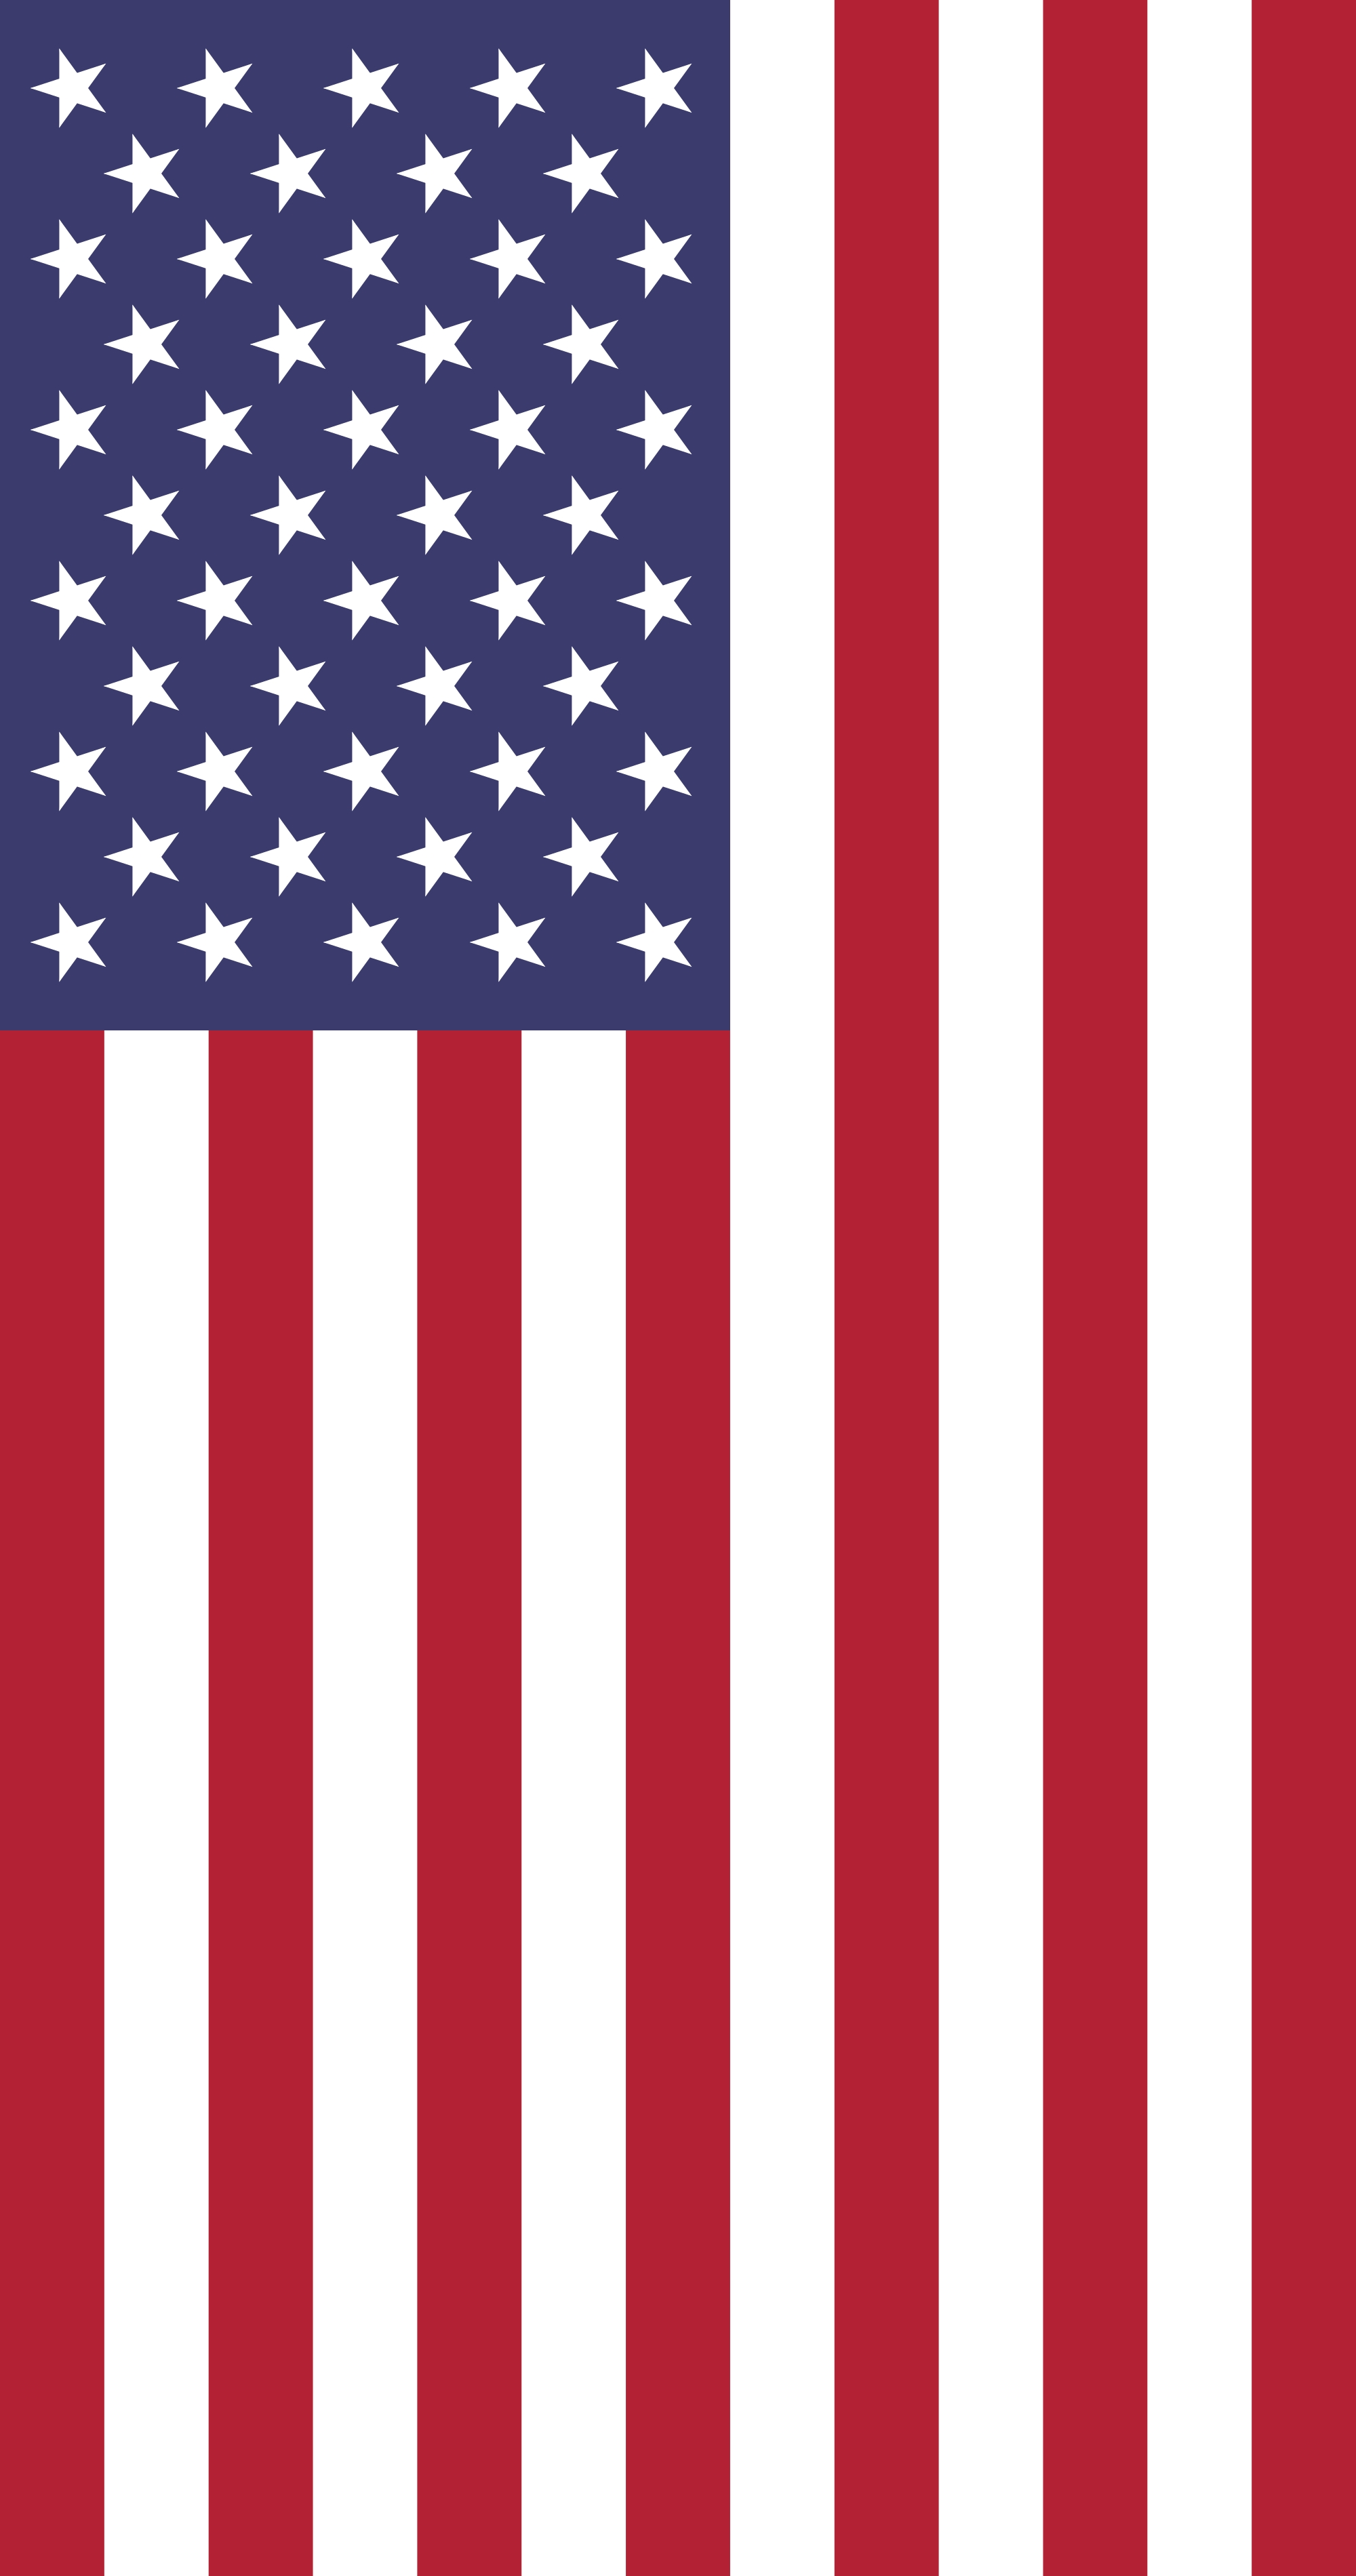 american flag | fotolip rich image and wallpaper